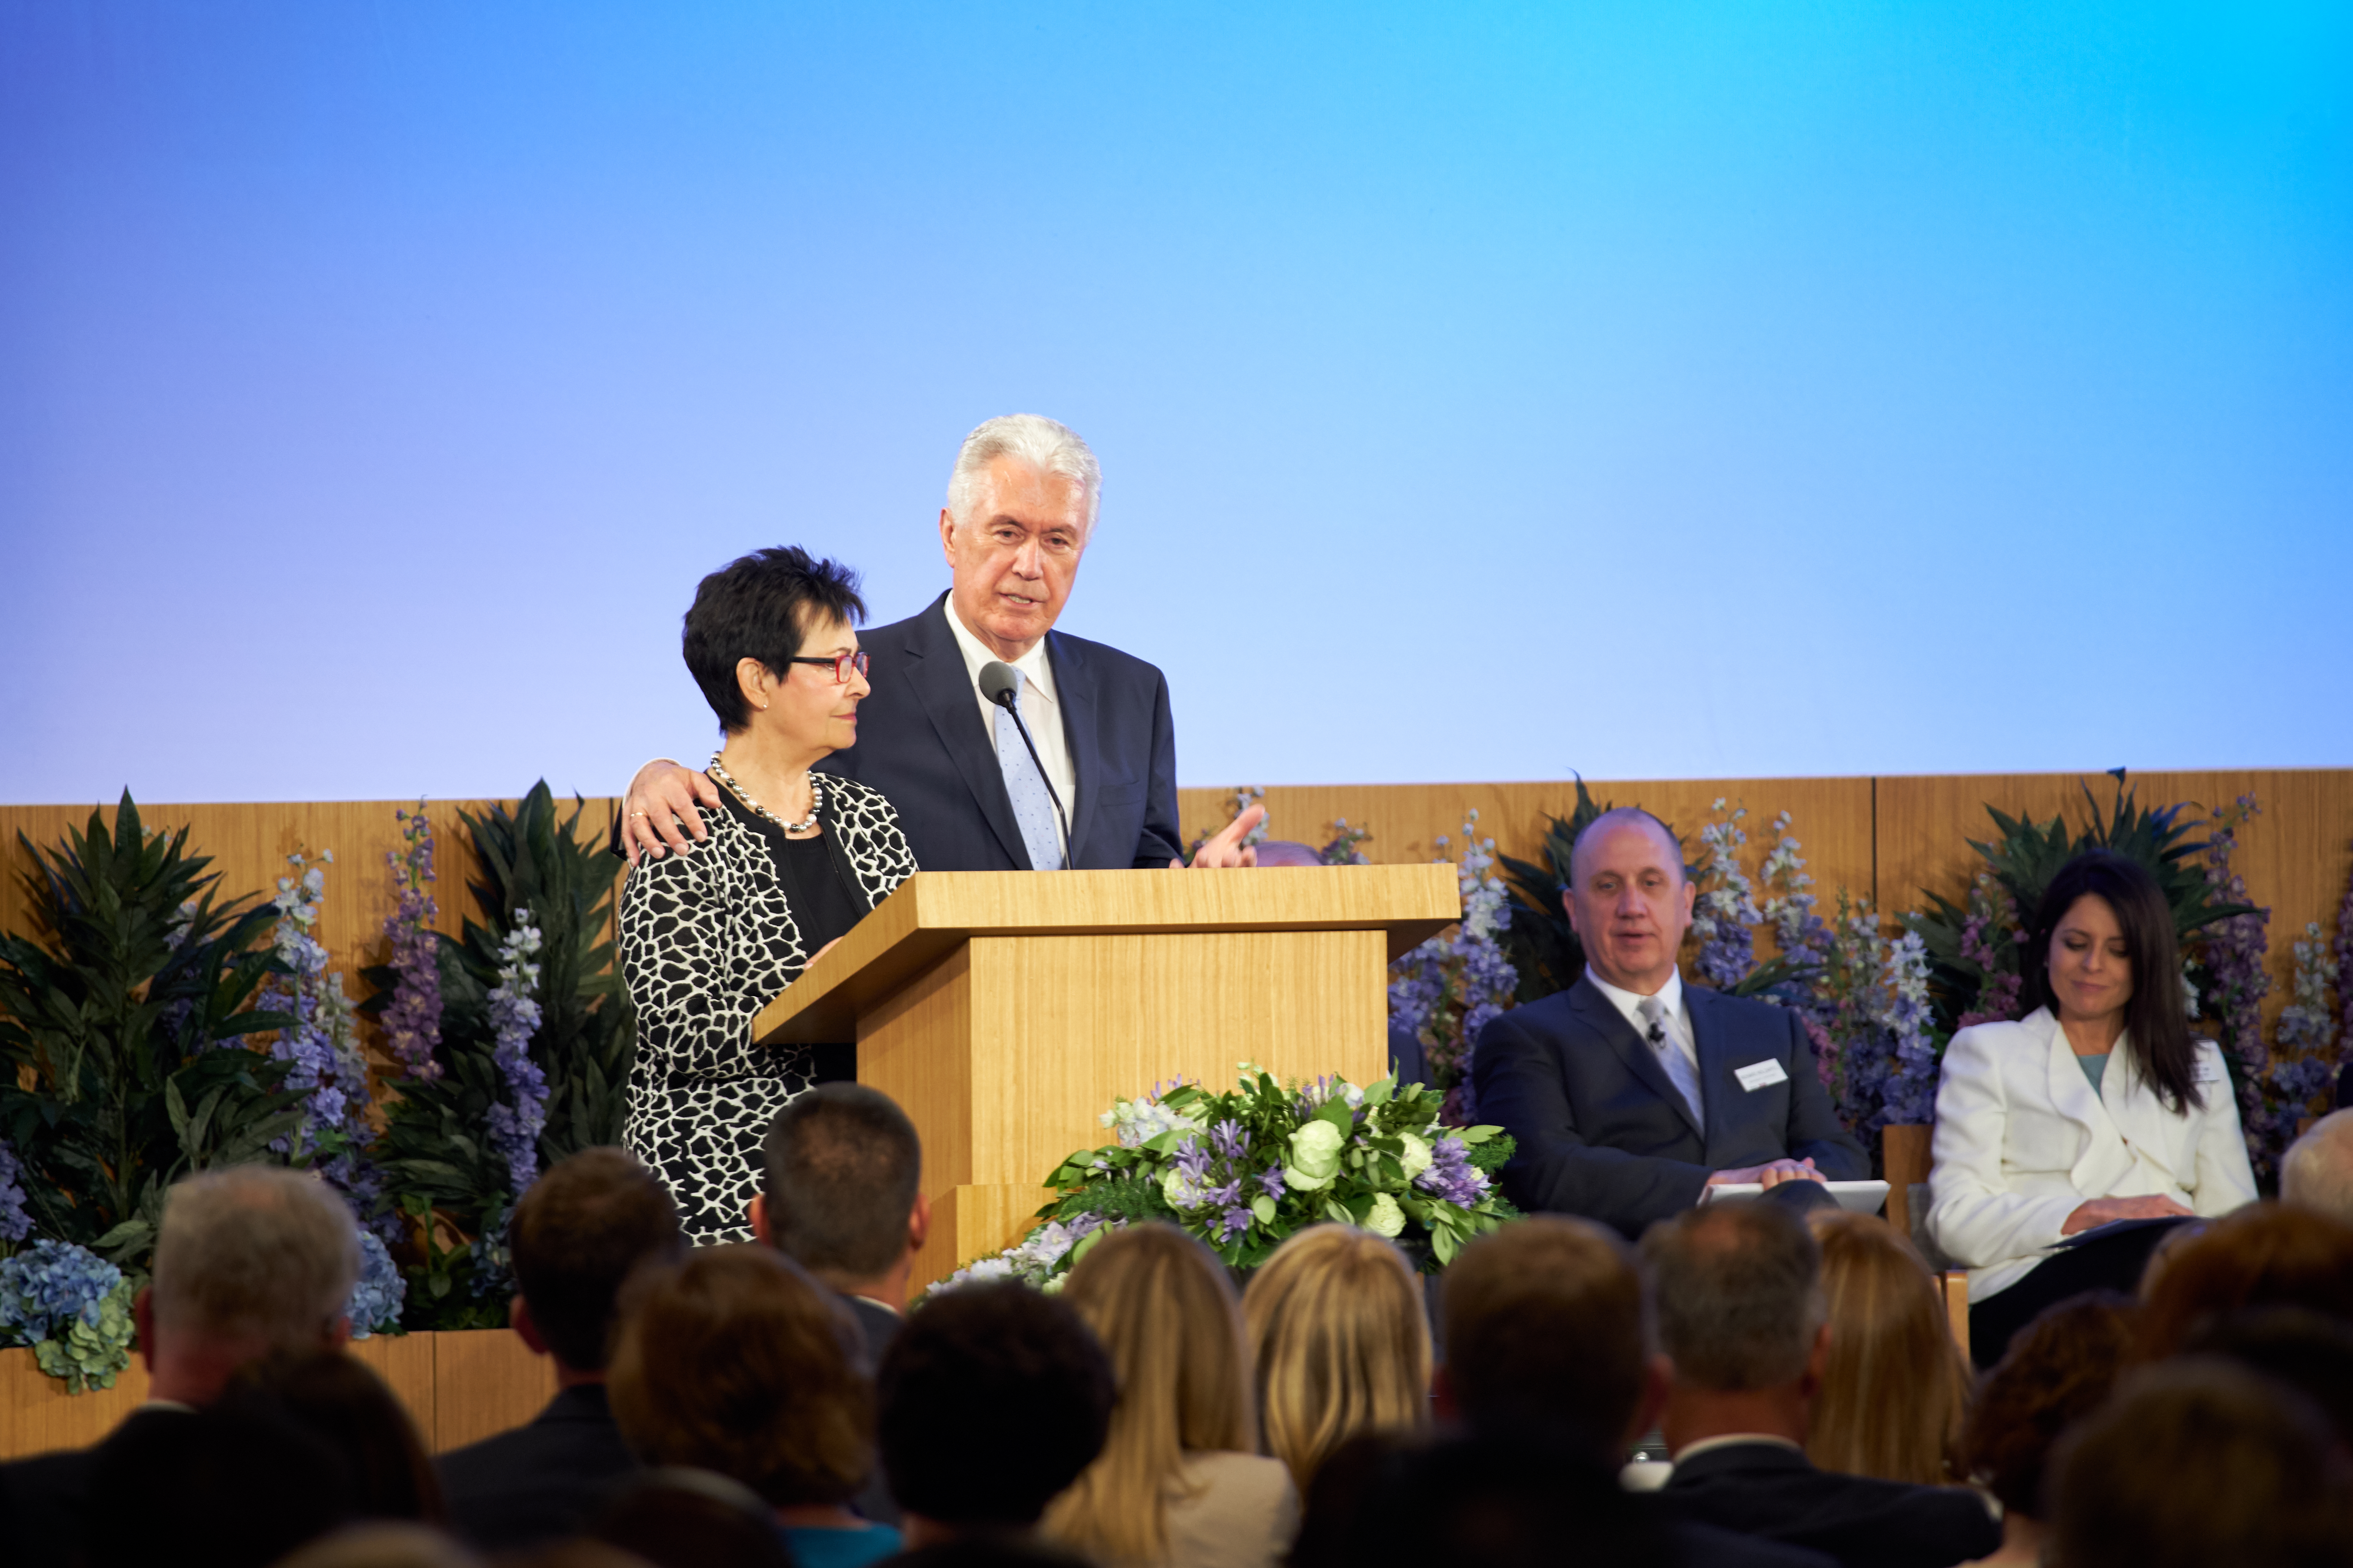 Elder Dieter F. Uchtdorf and his wife, Sister Harriet Uchtdorf, address new mission presidents and their wives during the 2018 Mission Leadership Seminar held in the Provo MTC June 24-26.